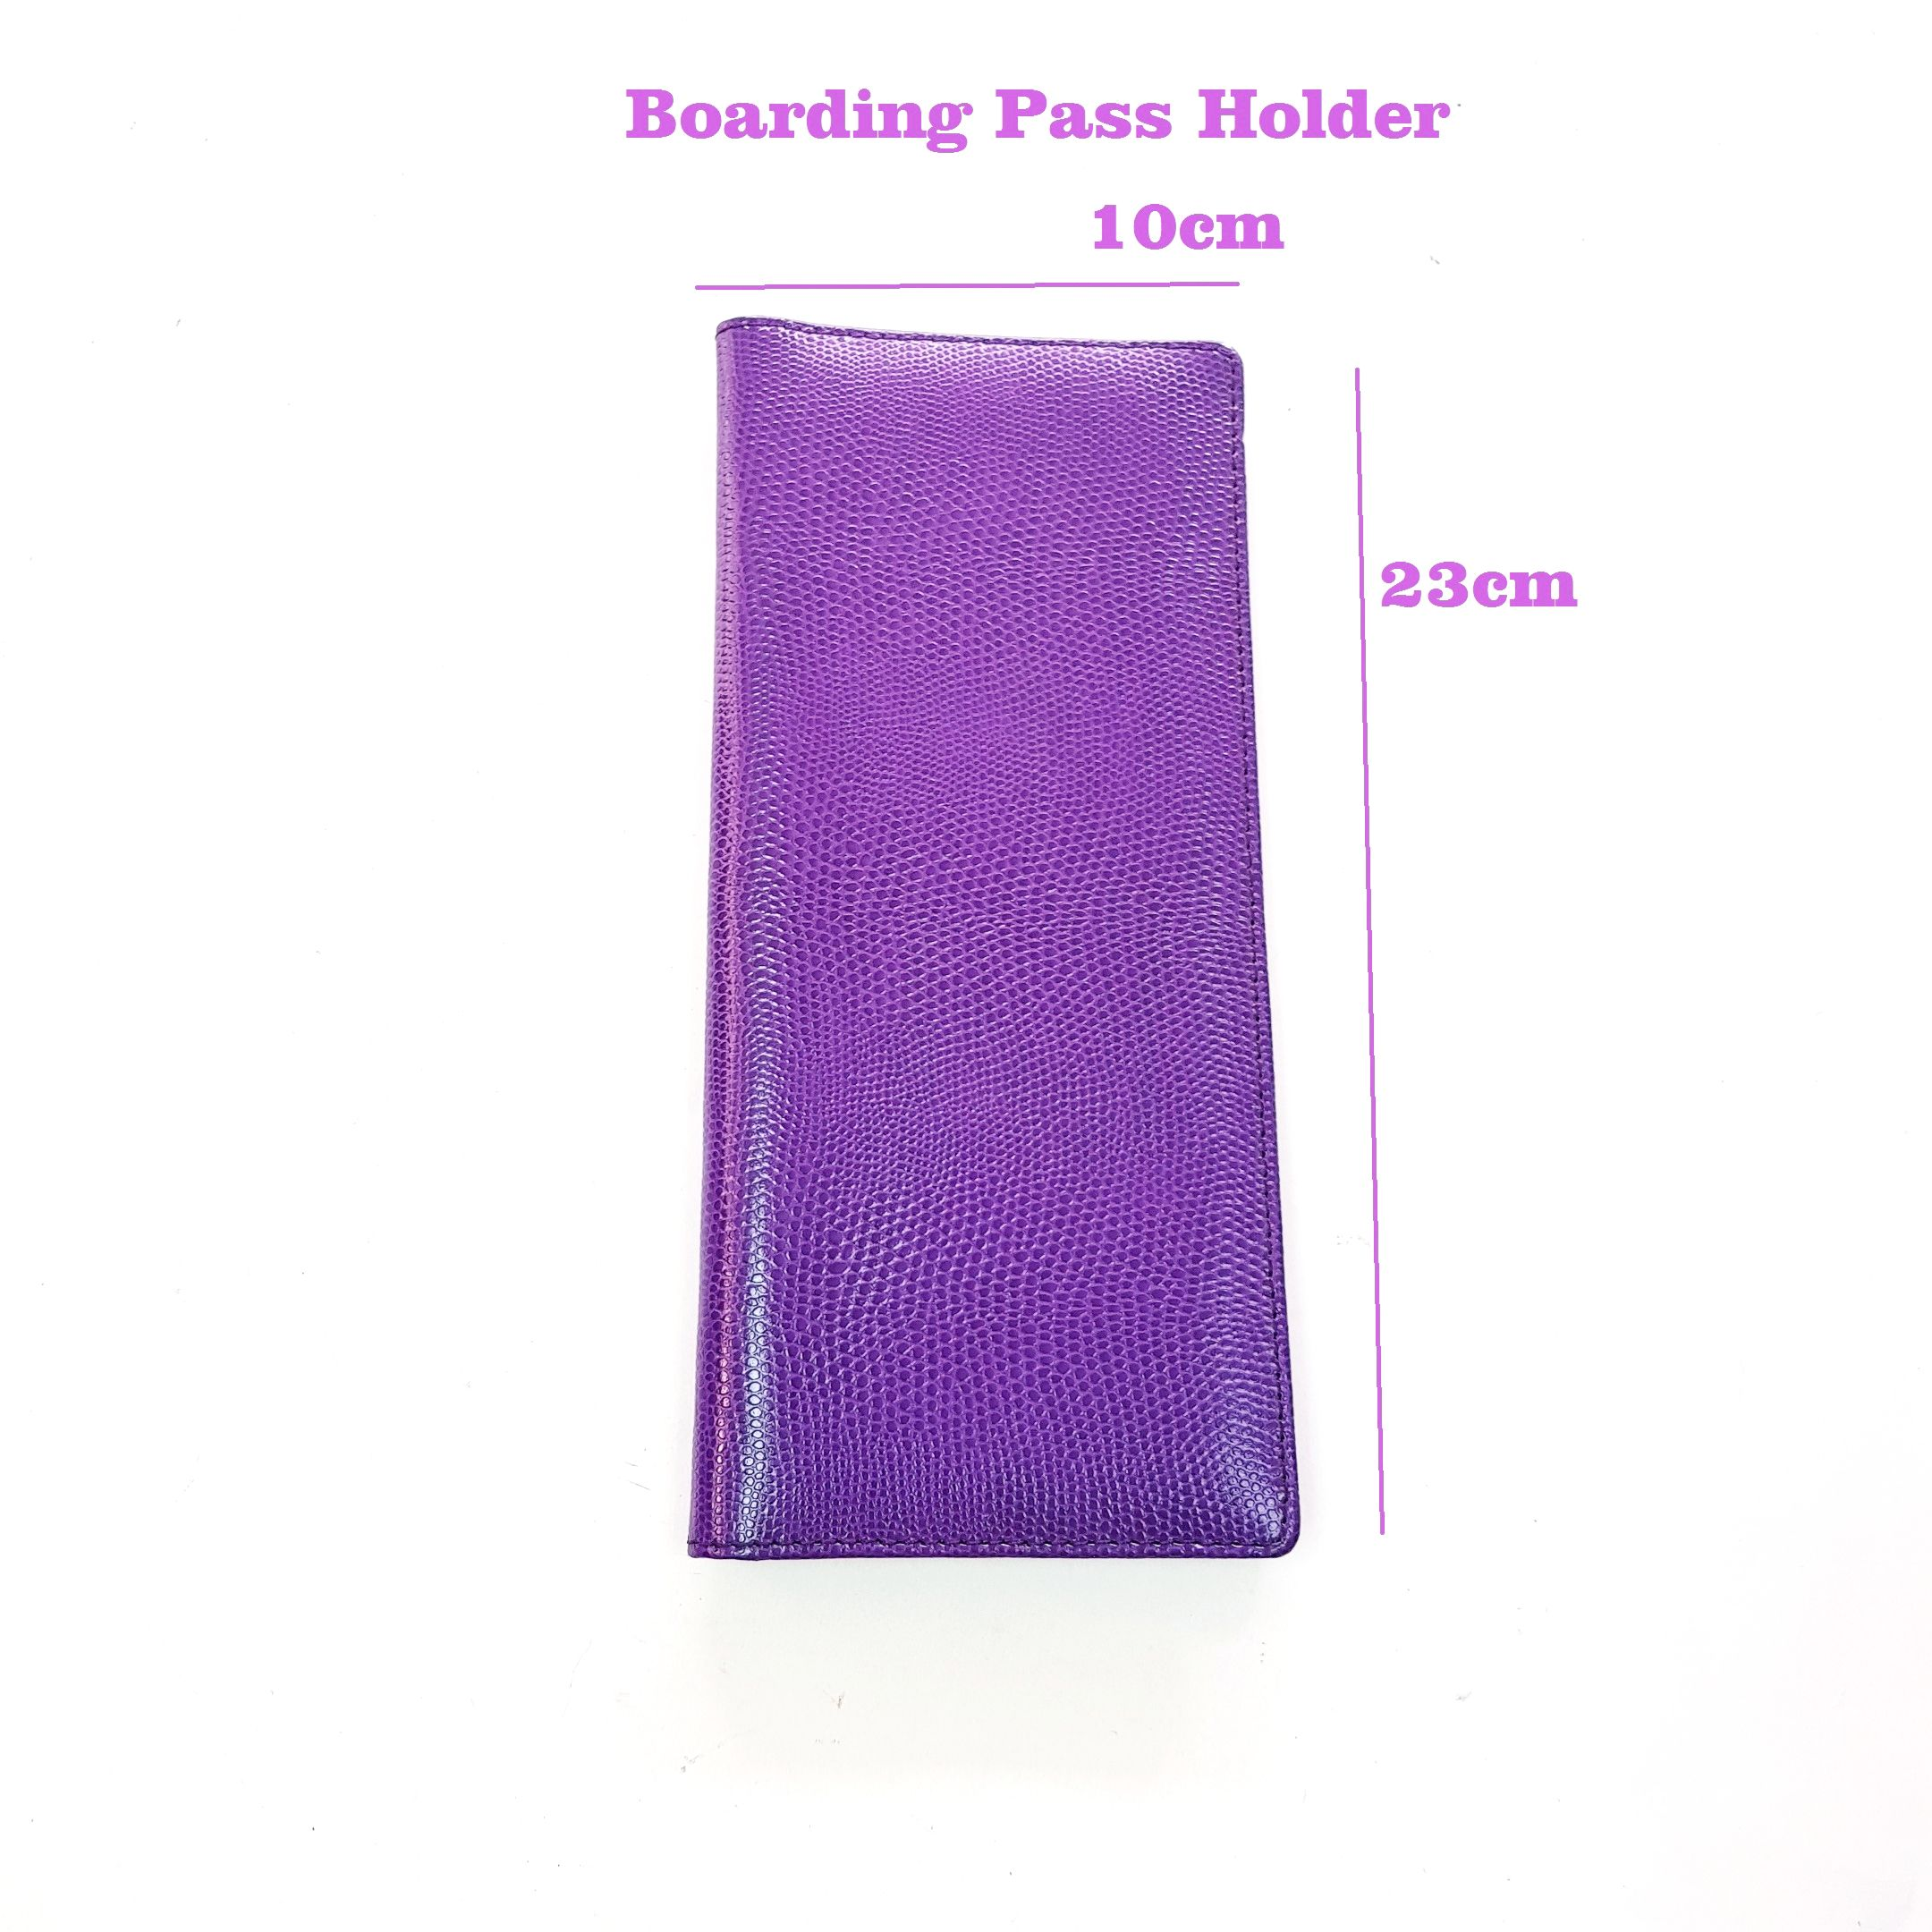 Passport [ Pass Holder ] Customized Design Pu Leather Boarding Pass Holder